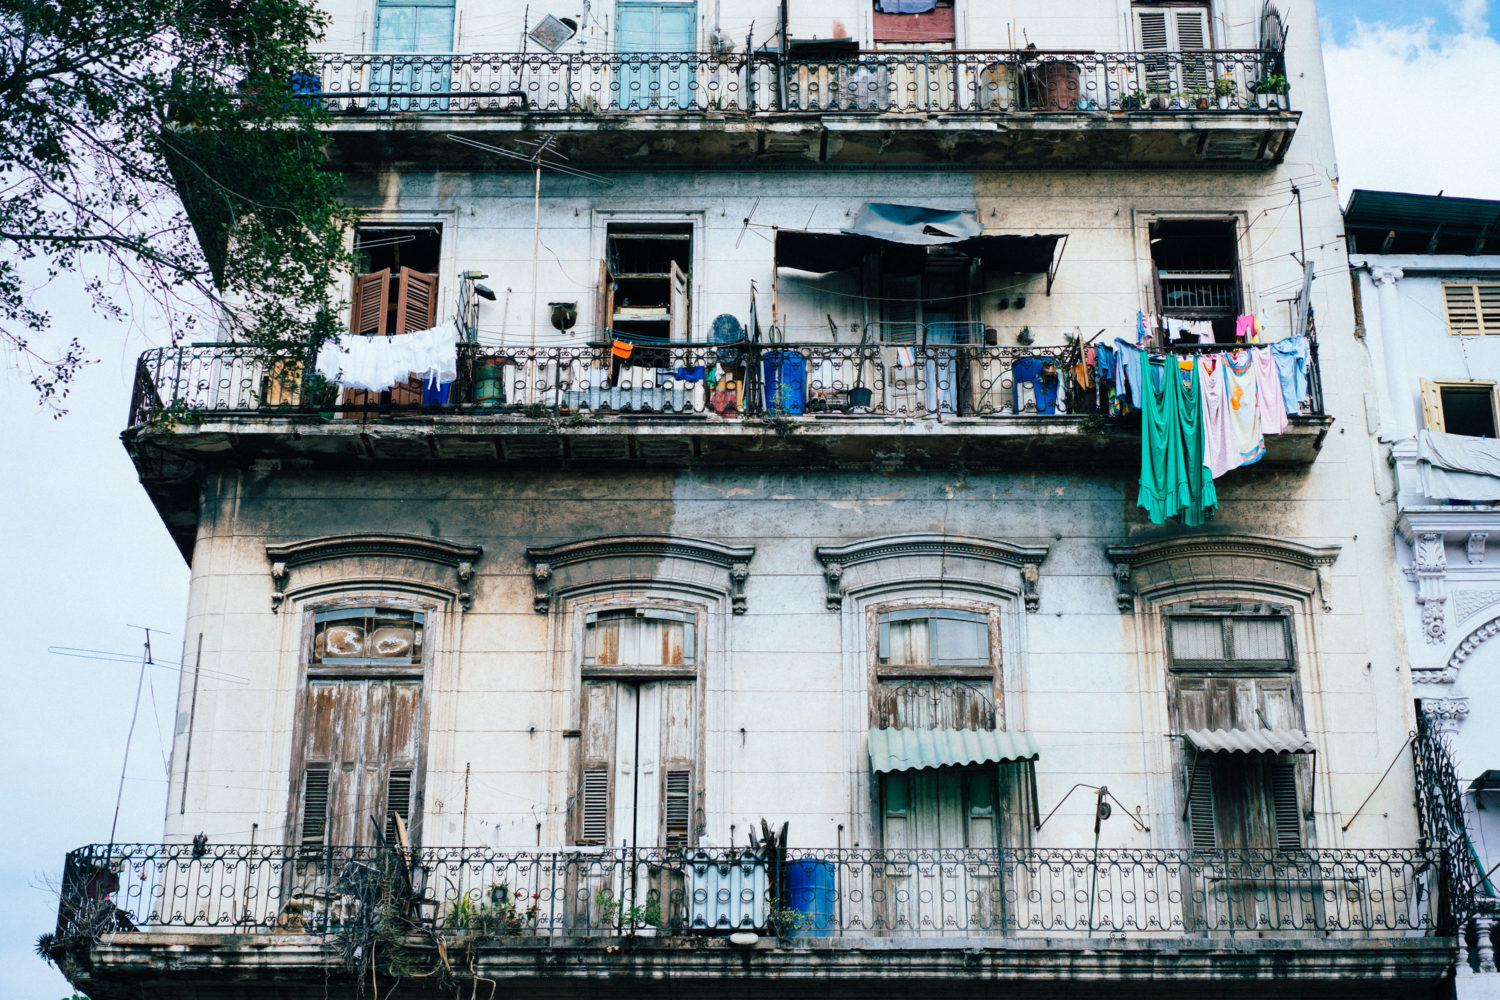 la-habana-dante-vincent-photography-6